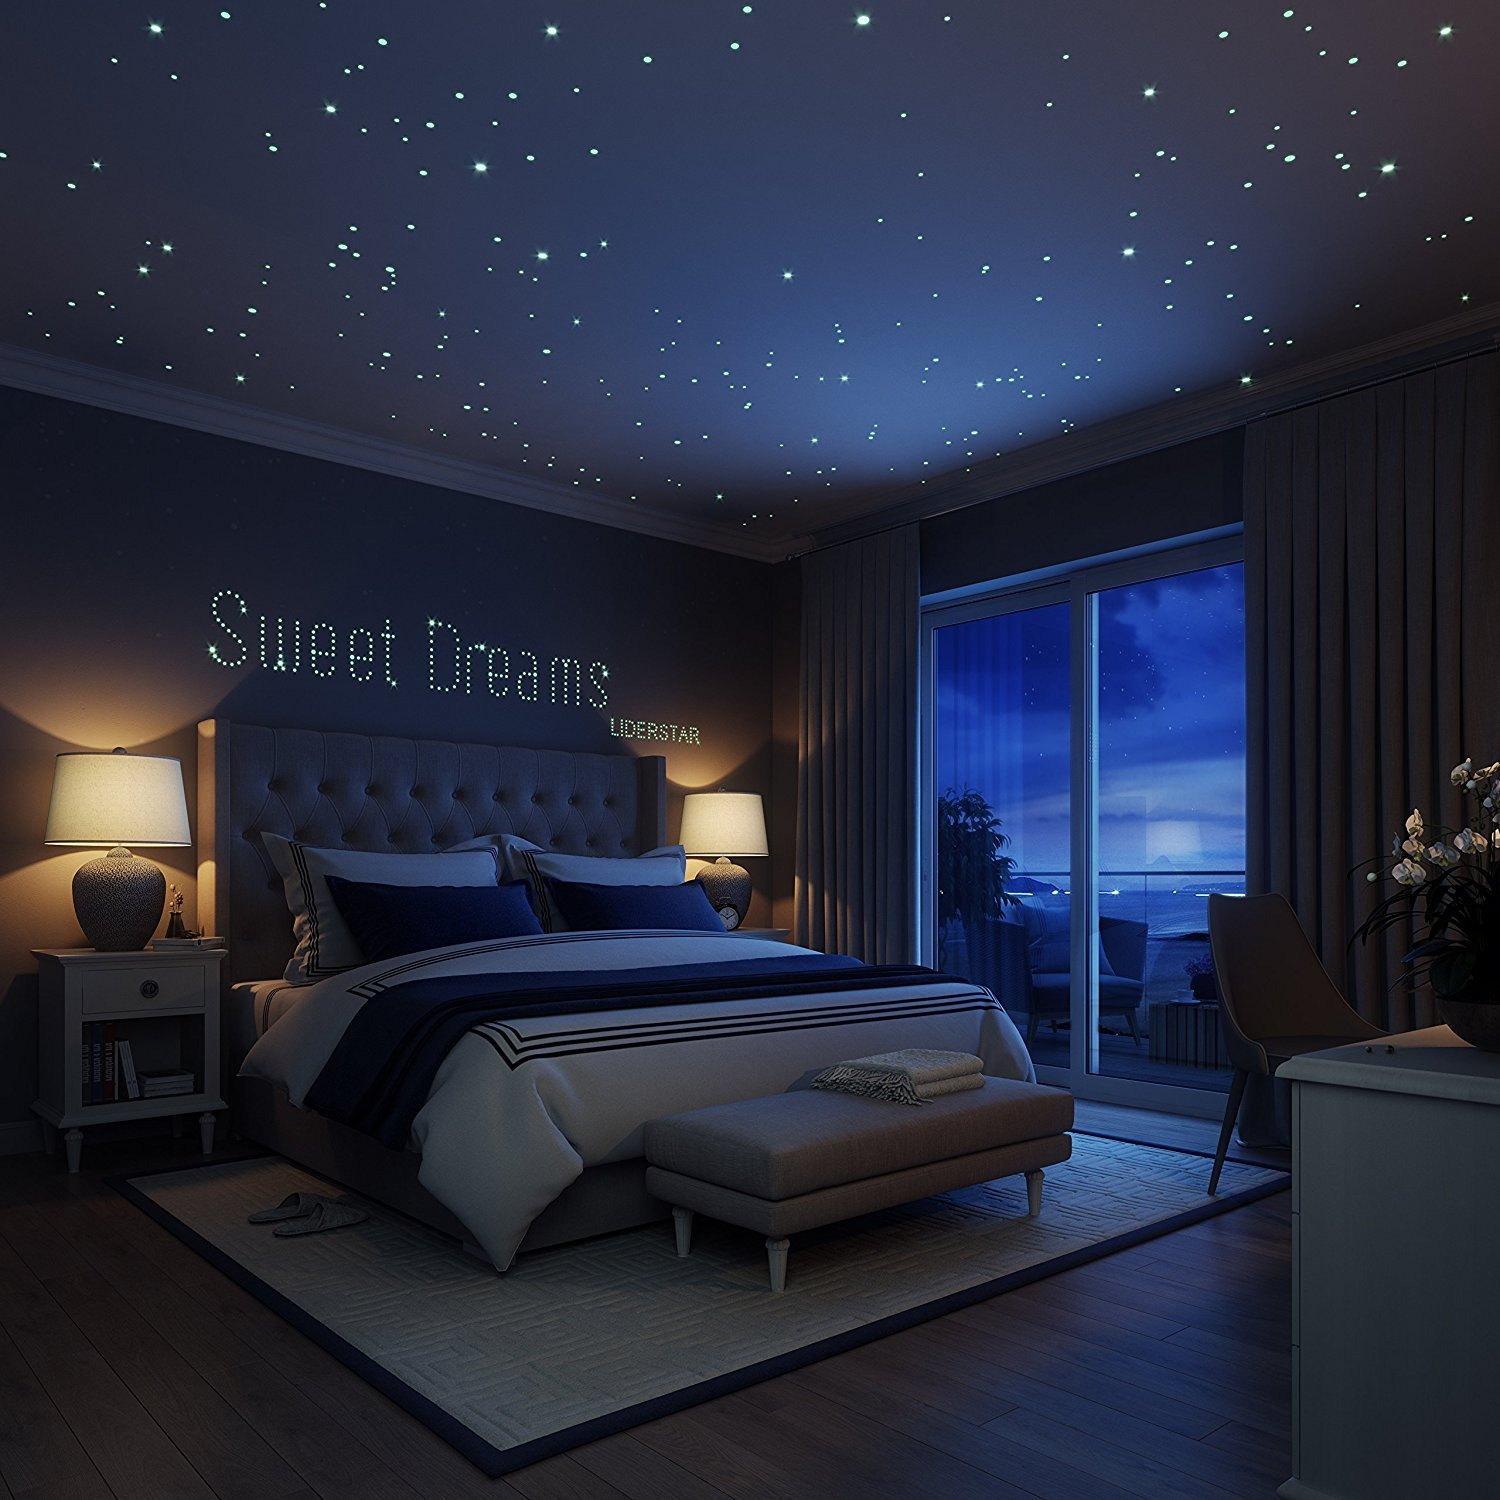 Anime Bedroom Ideas Bedroom Wall Decor Crafts Bedroom Design Of Pop Black And White Bedroom Design Inspiration: Science Shorts